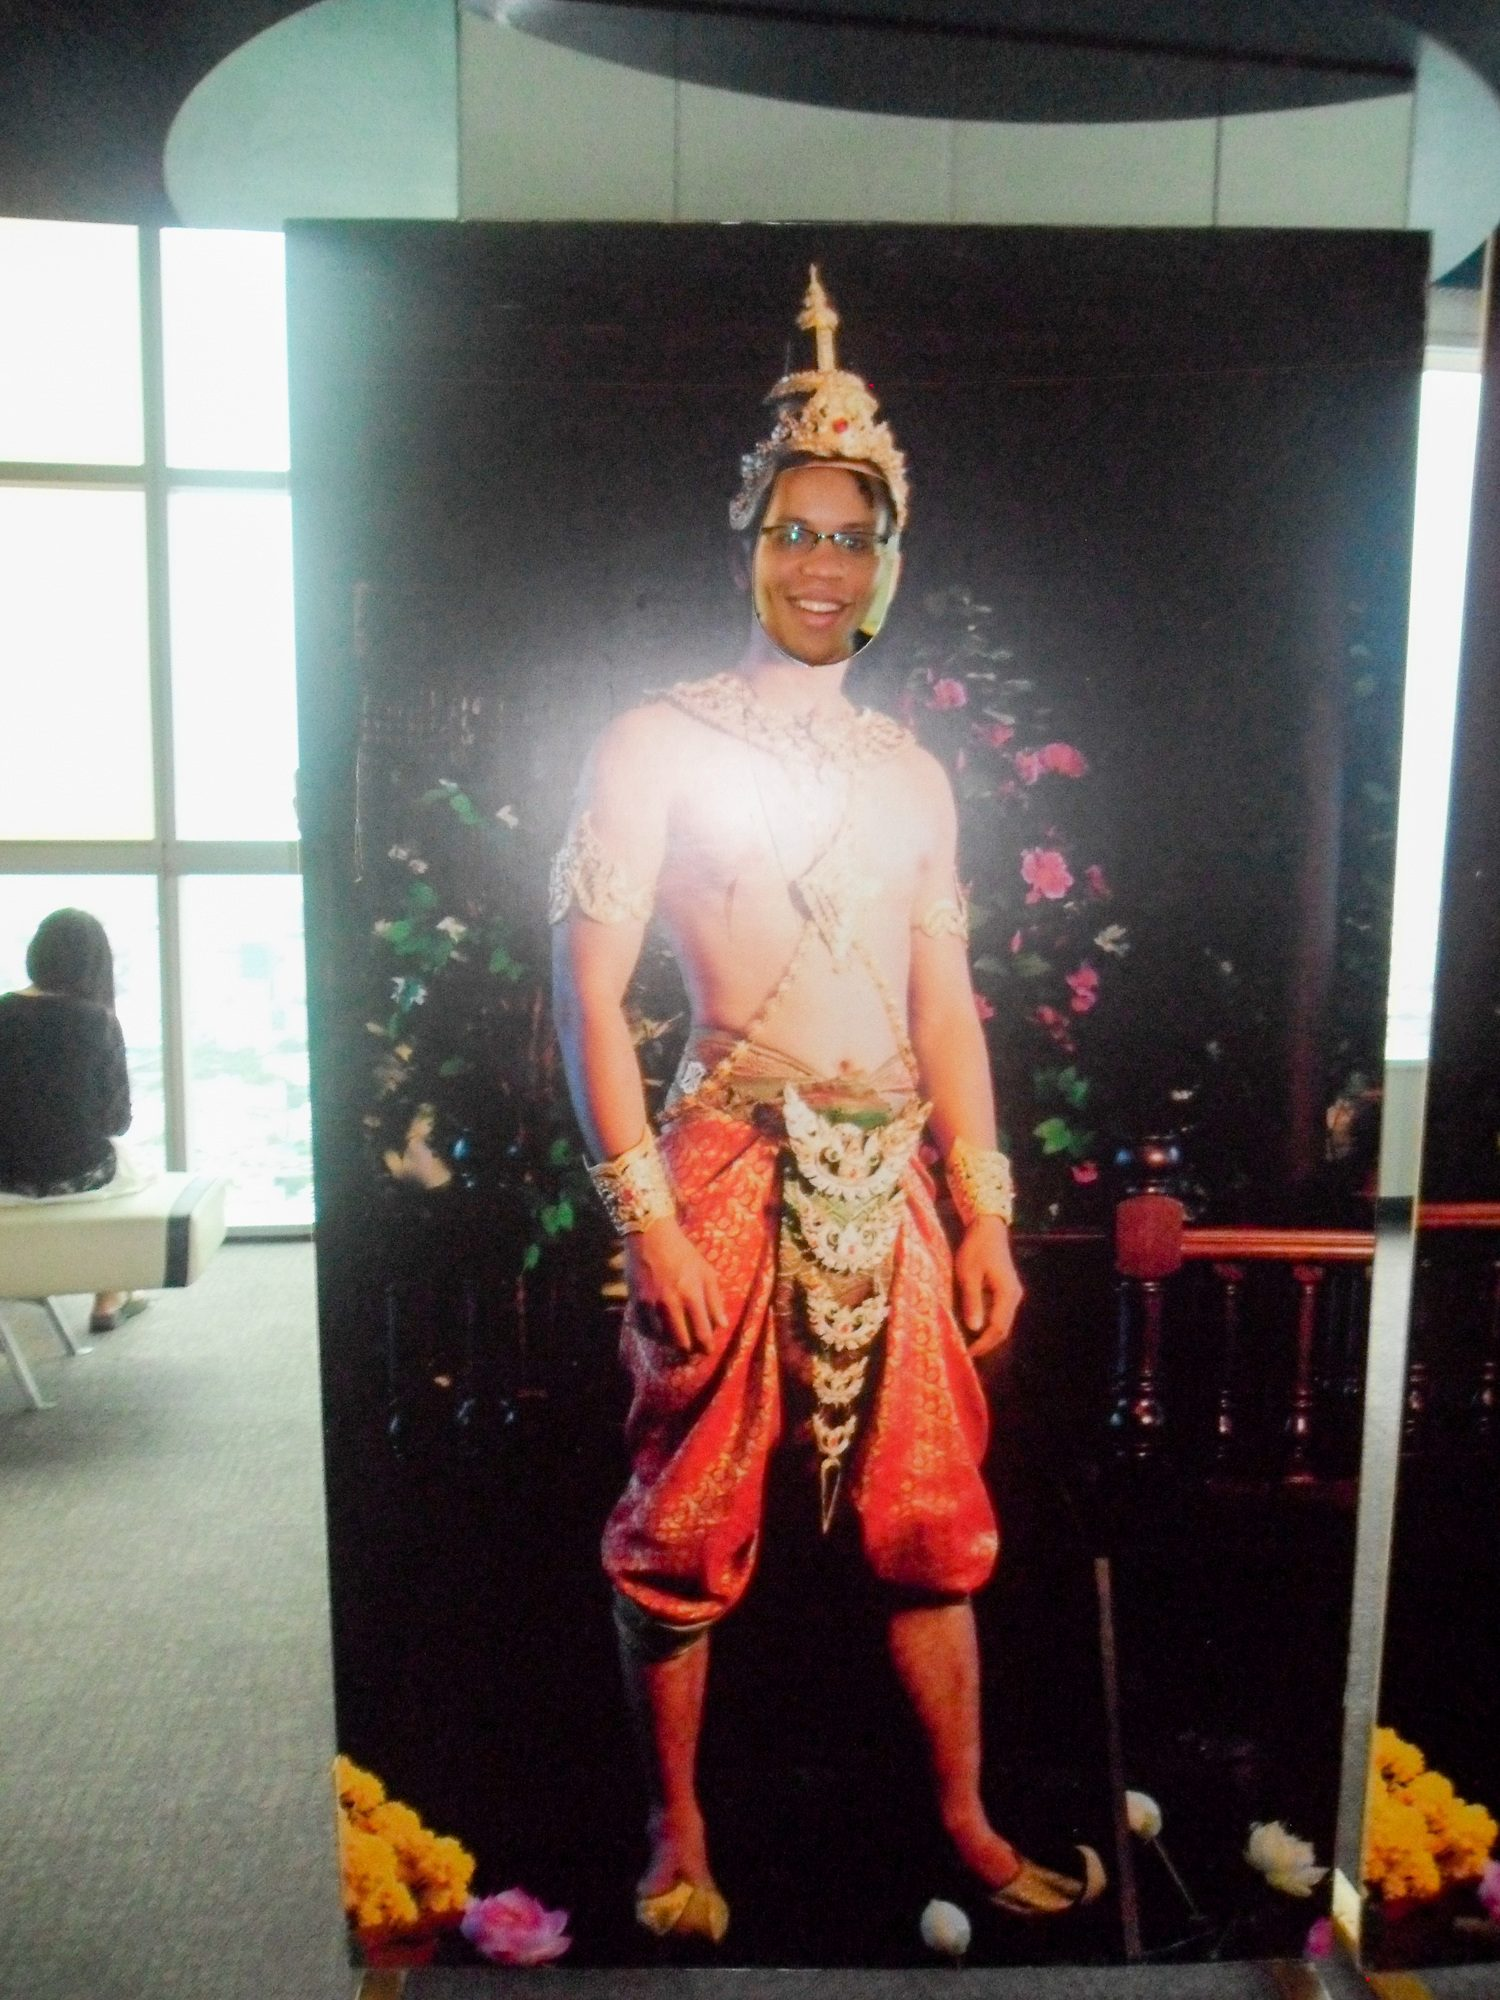 Visiting the tallest building in Thailand and posing behind this poster of traditional Thai dress.